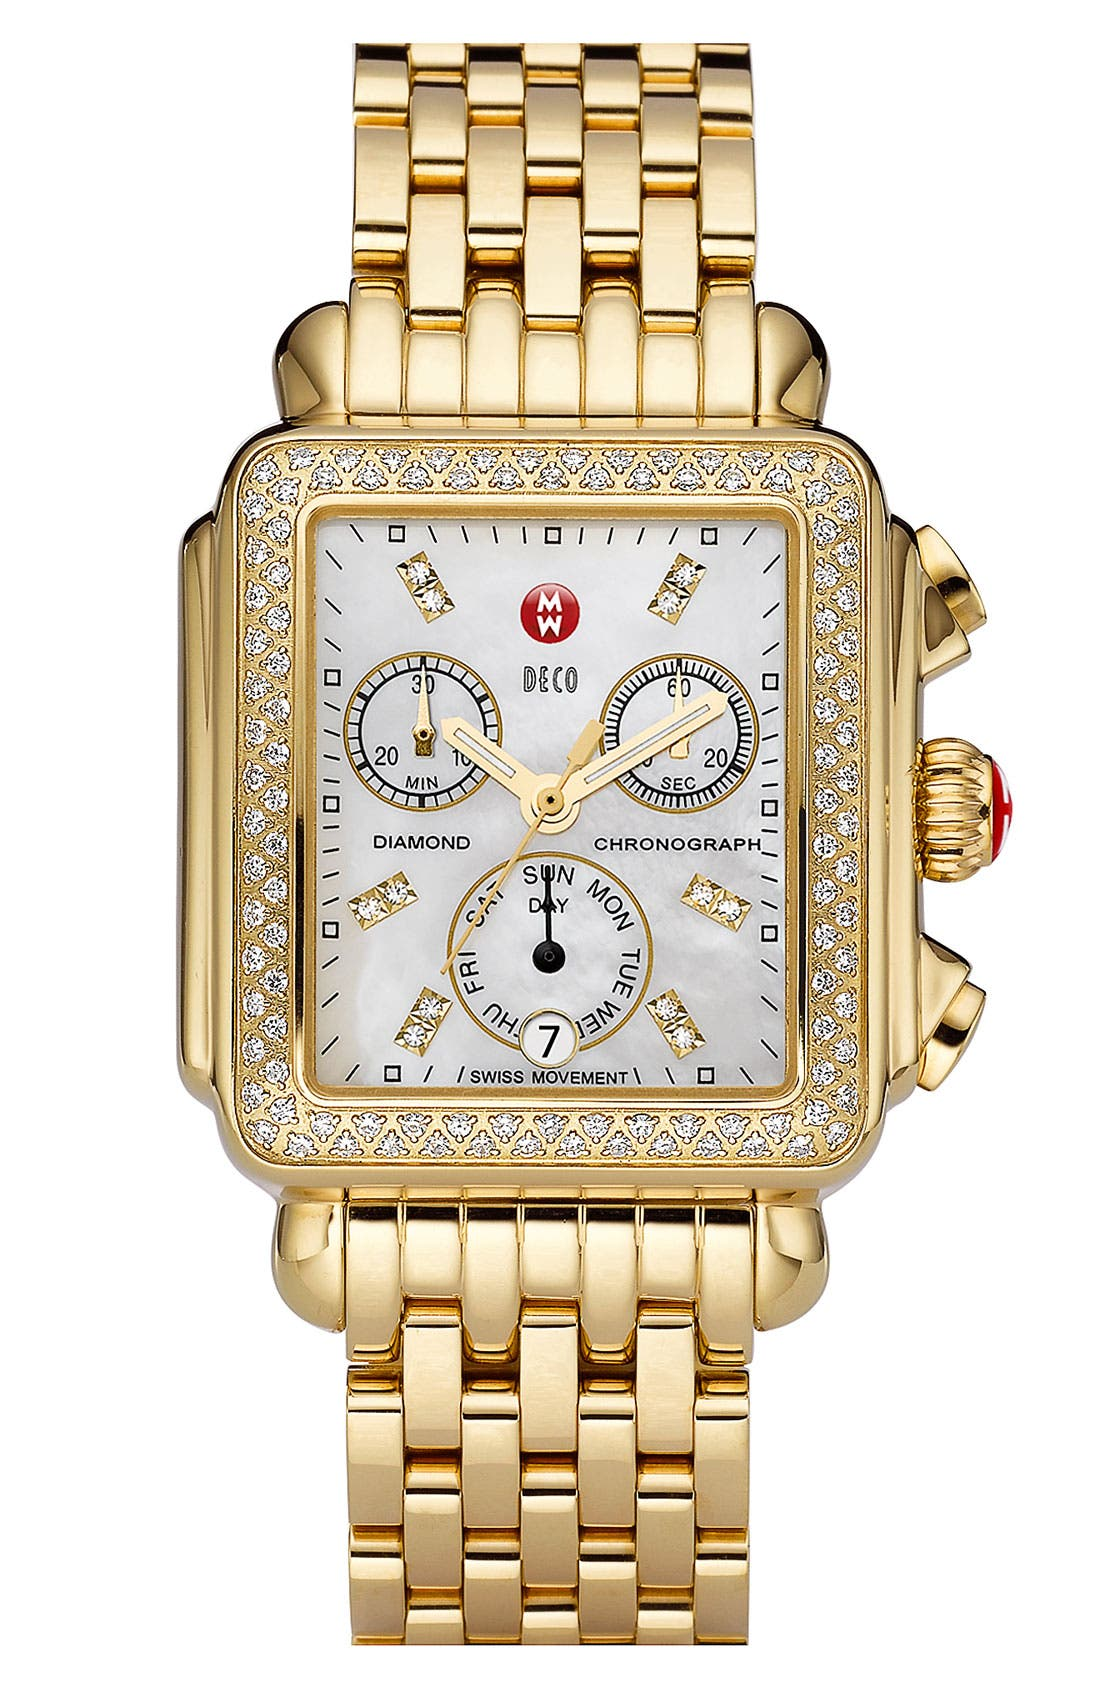 MICHELE, Deco Diamond Diamond Dial Gold Plated Watch Case, 33mm x 35mm, Alternate thumbnail 4, color, GOLD